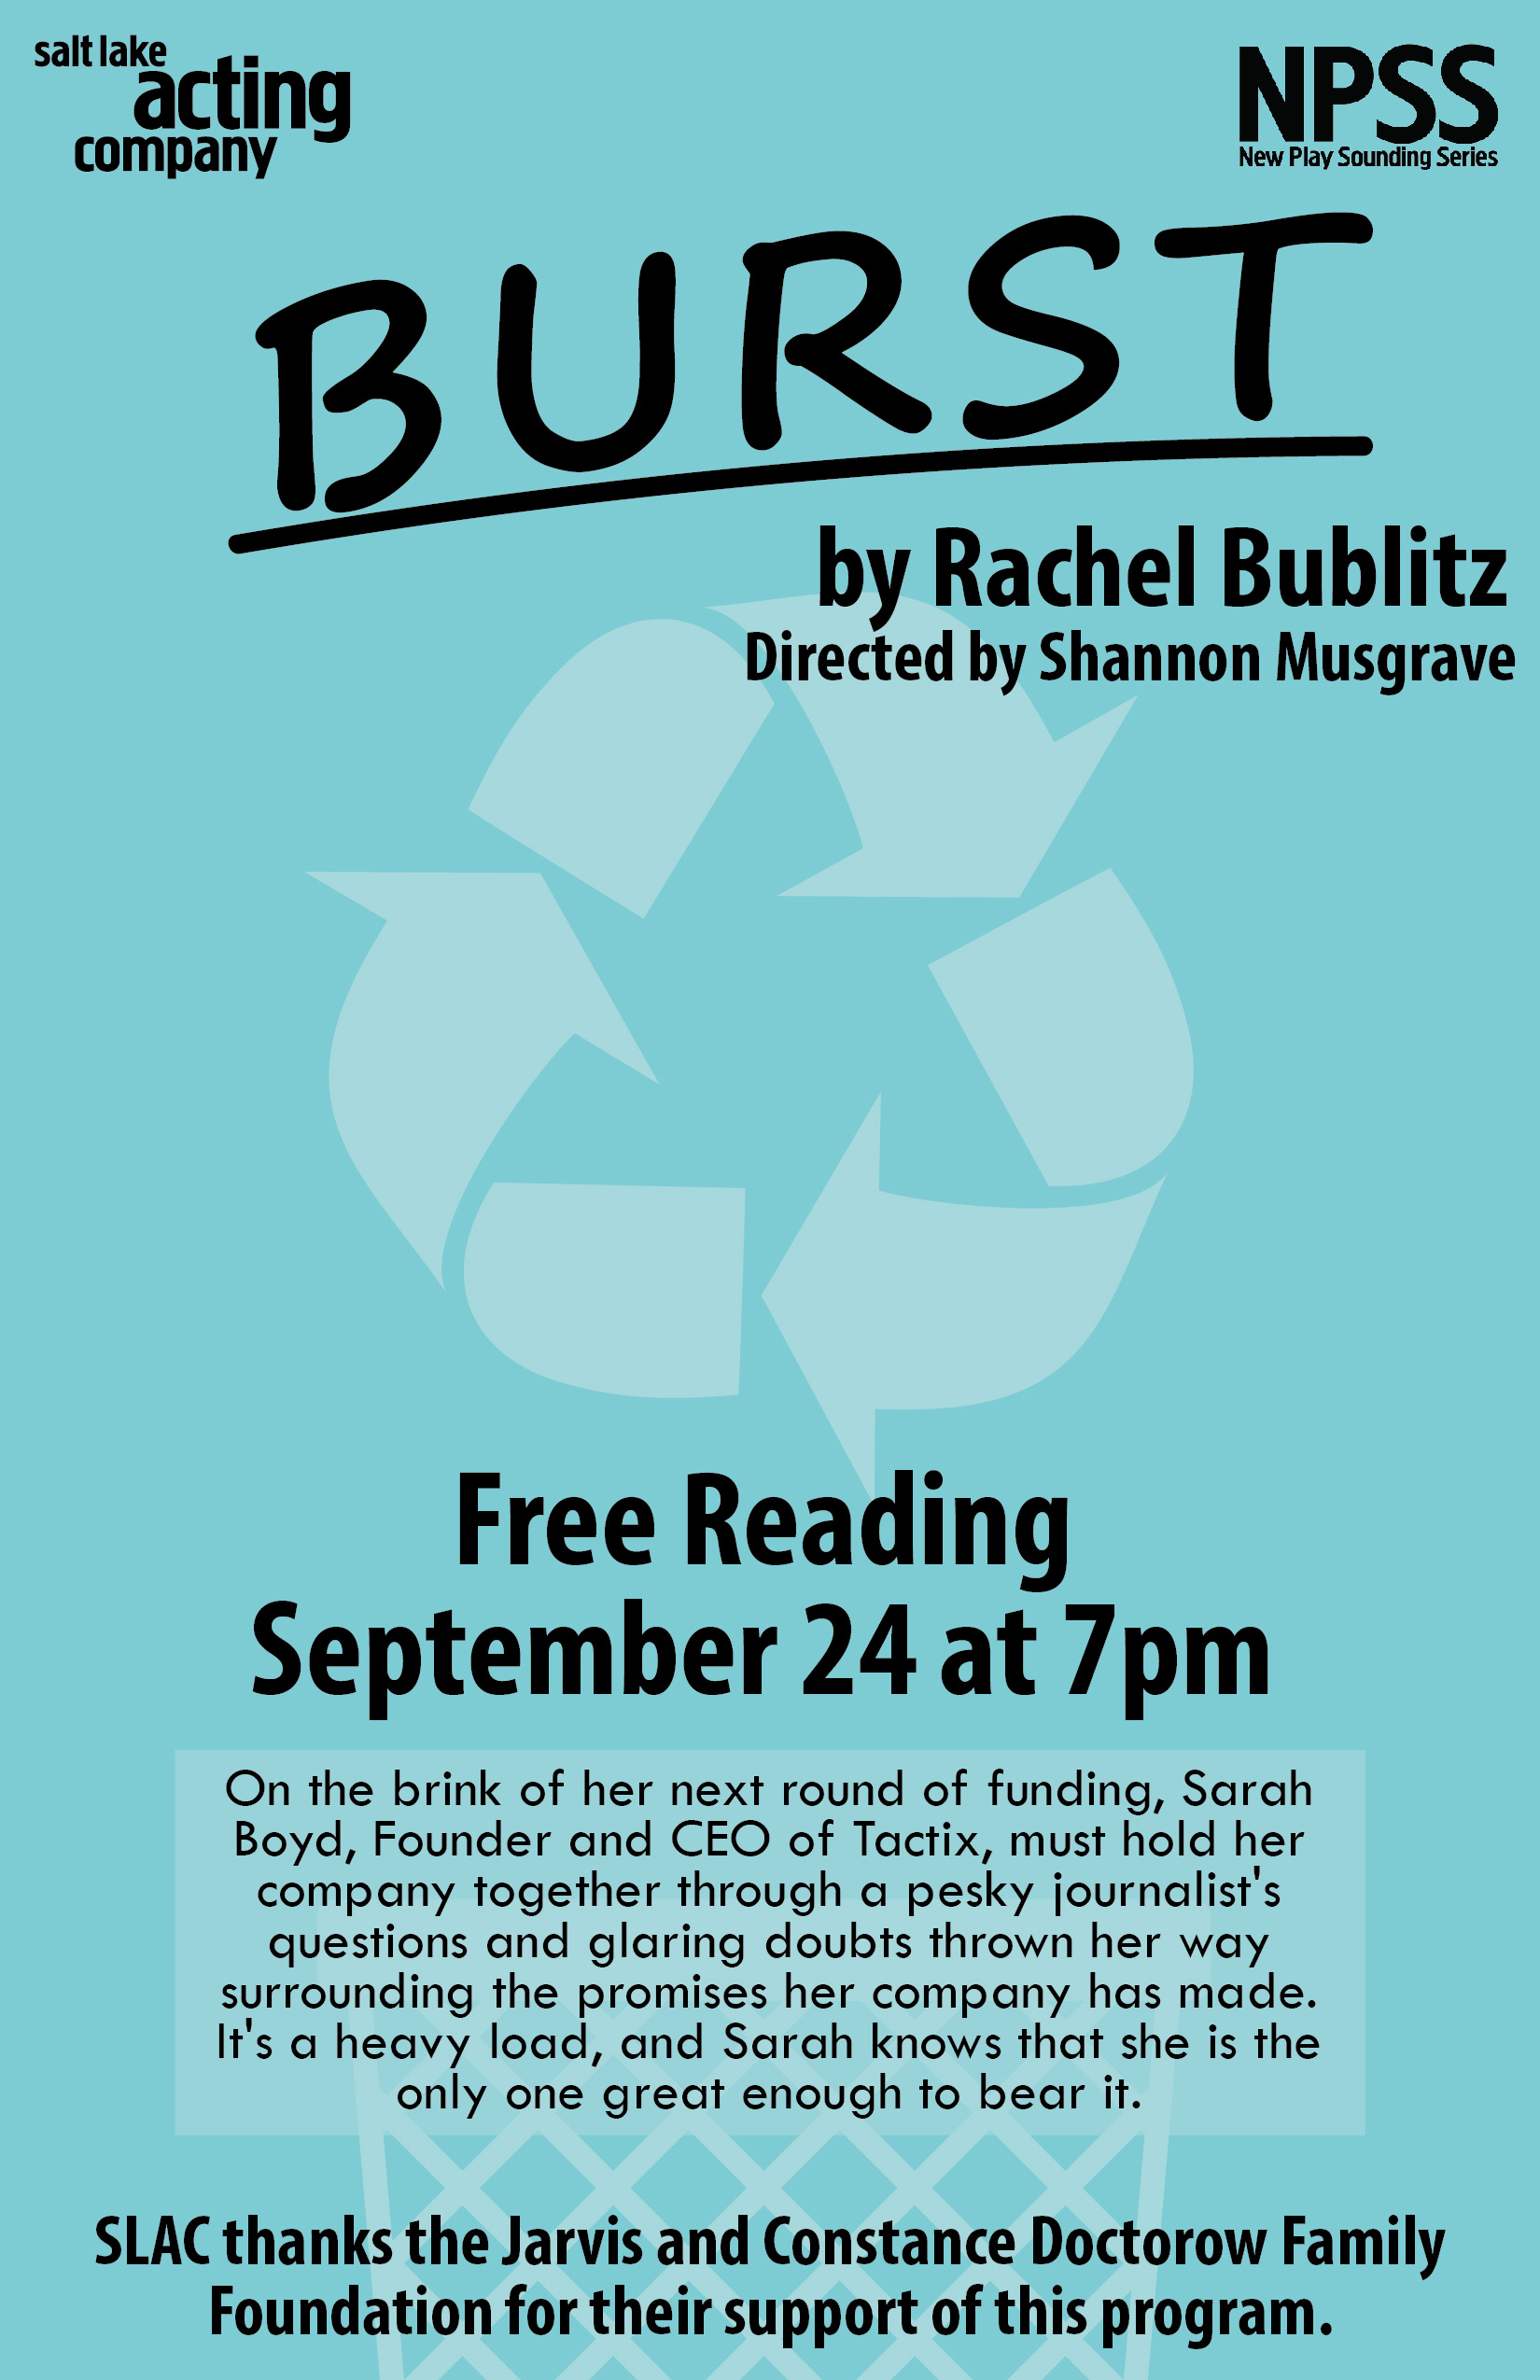 Poster for the BURST reading at Salt Lake Acting Company.